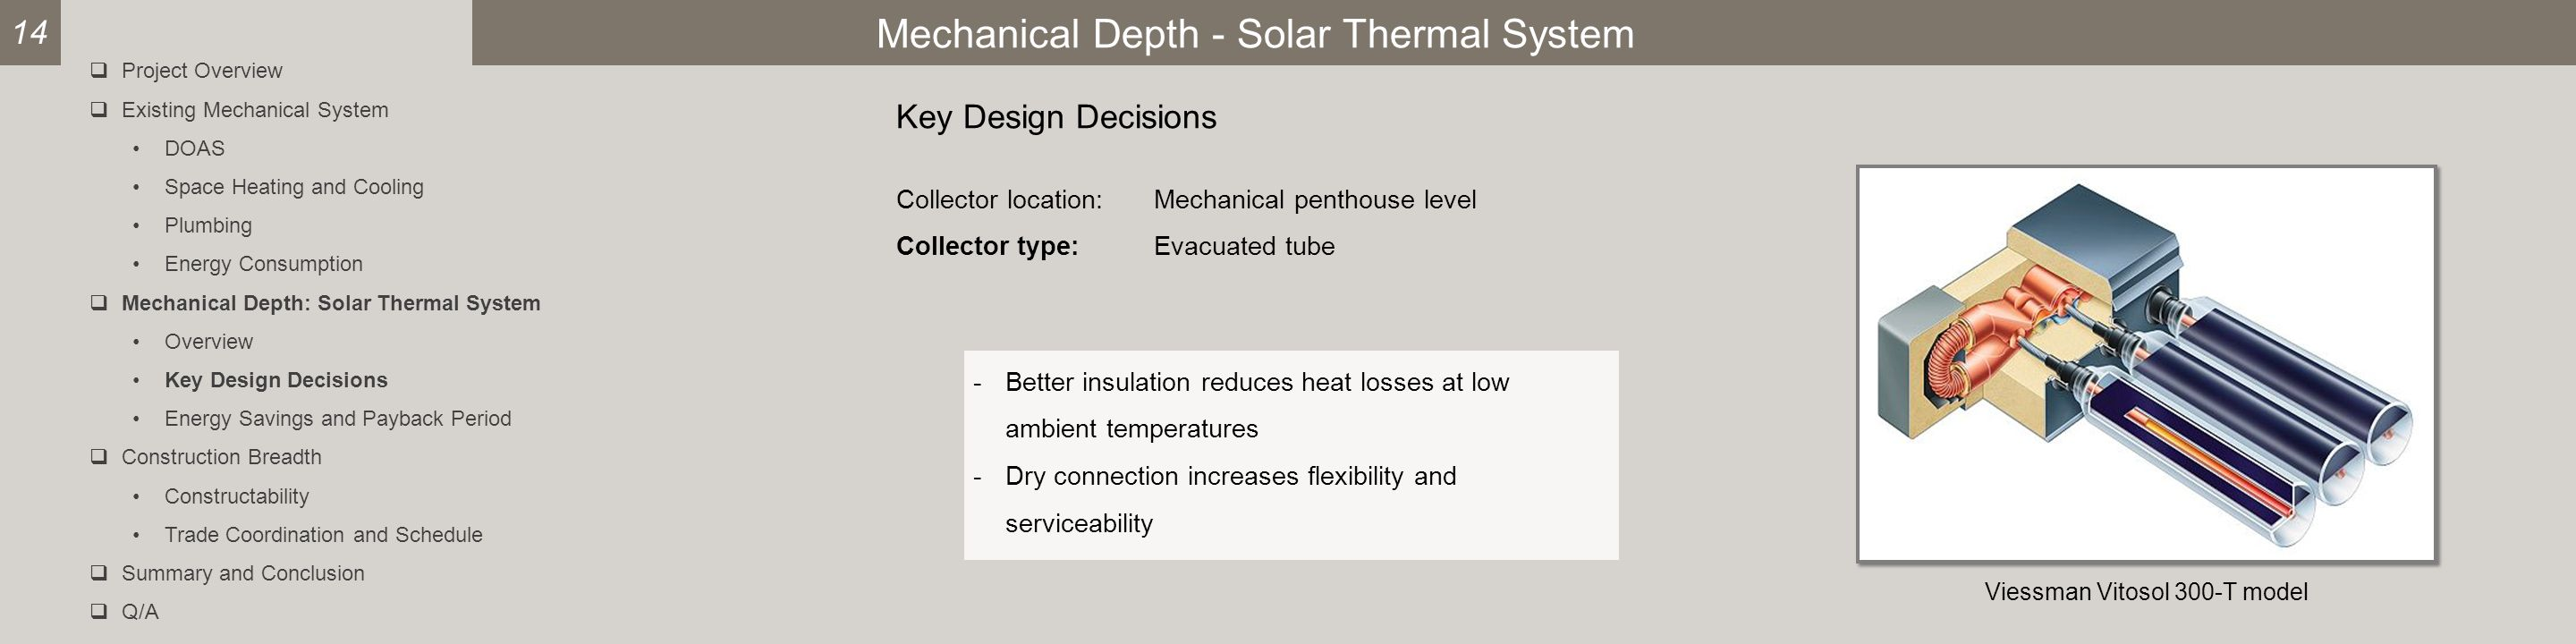 Mechanical Depth - Solar Thermal System Key Design Decisions Viessman Vitosol 300-T model -Better insulation reduces heat losses at low ambient temperatures -Dry connection increases flexibility and serviceability 14  Project Overview  Existing Mechanical System DOAS Space Heating and Cooling Plumbing Energy Consumption  Mechanical Depth: Solar Thermal System Overview Key Design Decisions Energy Savings and Payback Period  Construction Breadth Constructability Trade Coordination and Schedule  Summary and Conclusion  Q/A Collector location:Mechanical penthouse level Collector type:Evacuated tube